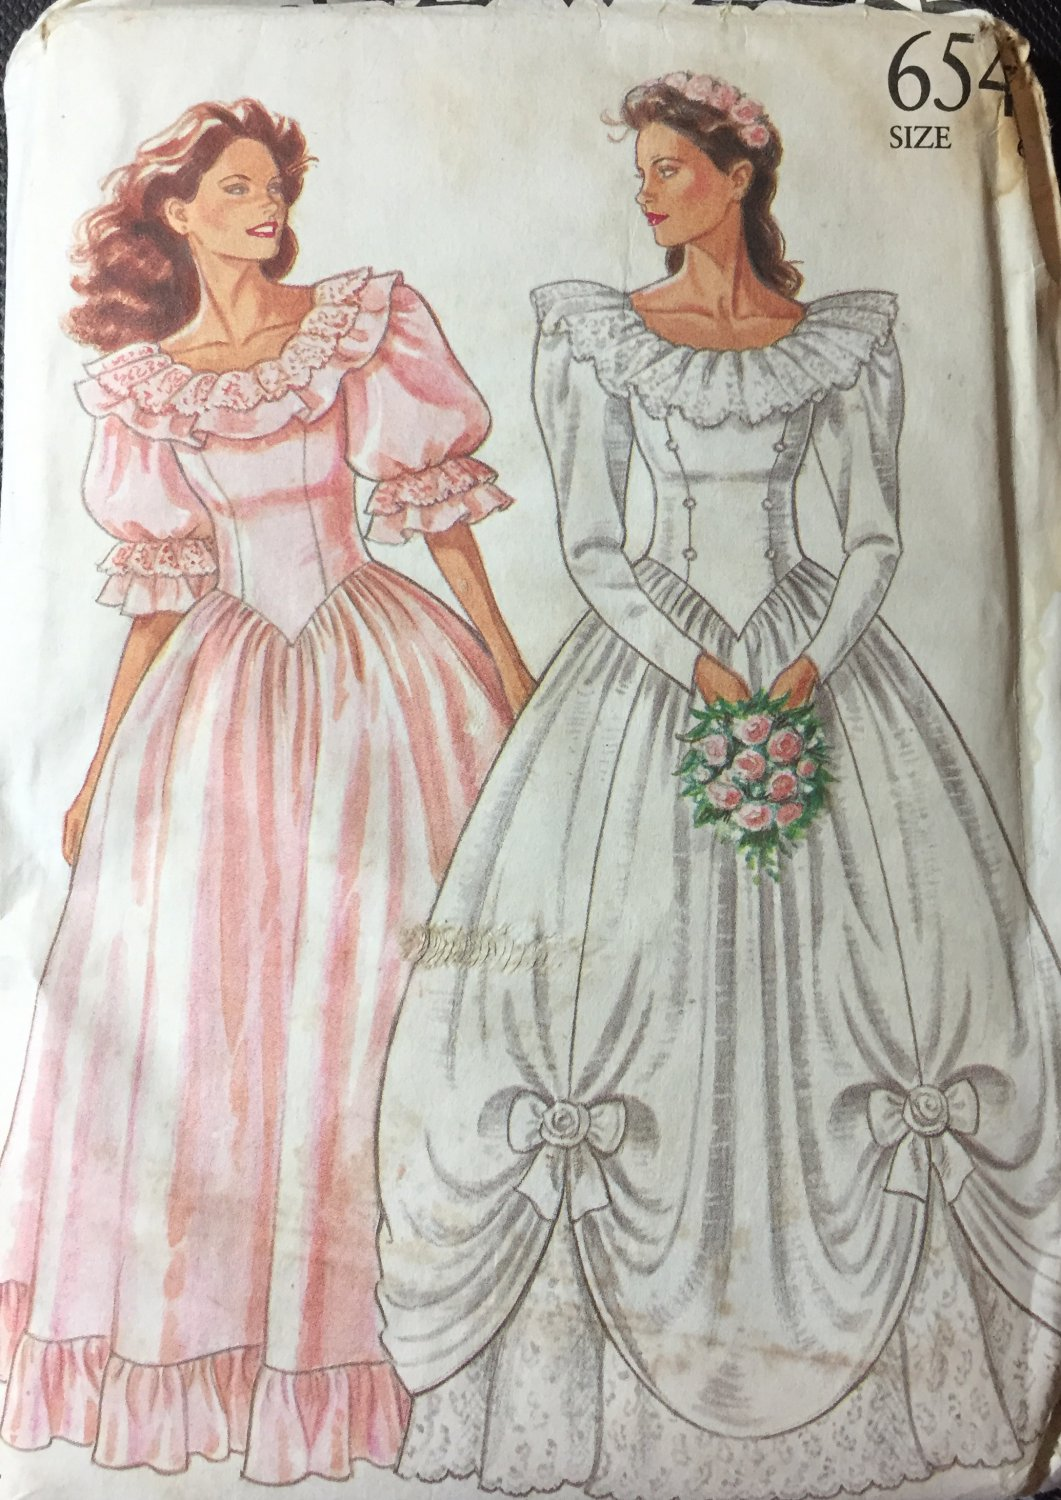 New Look 6543 Princess Gown wedding, Bridesmaid Dress prom, costume  Size 6-18